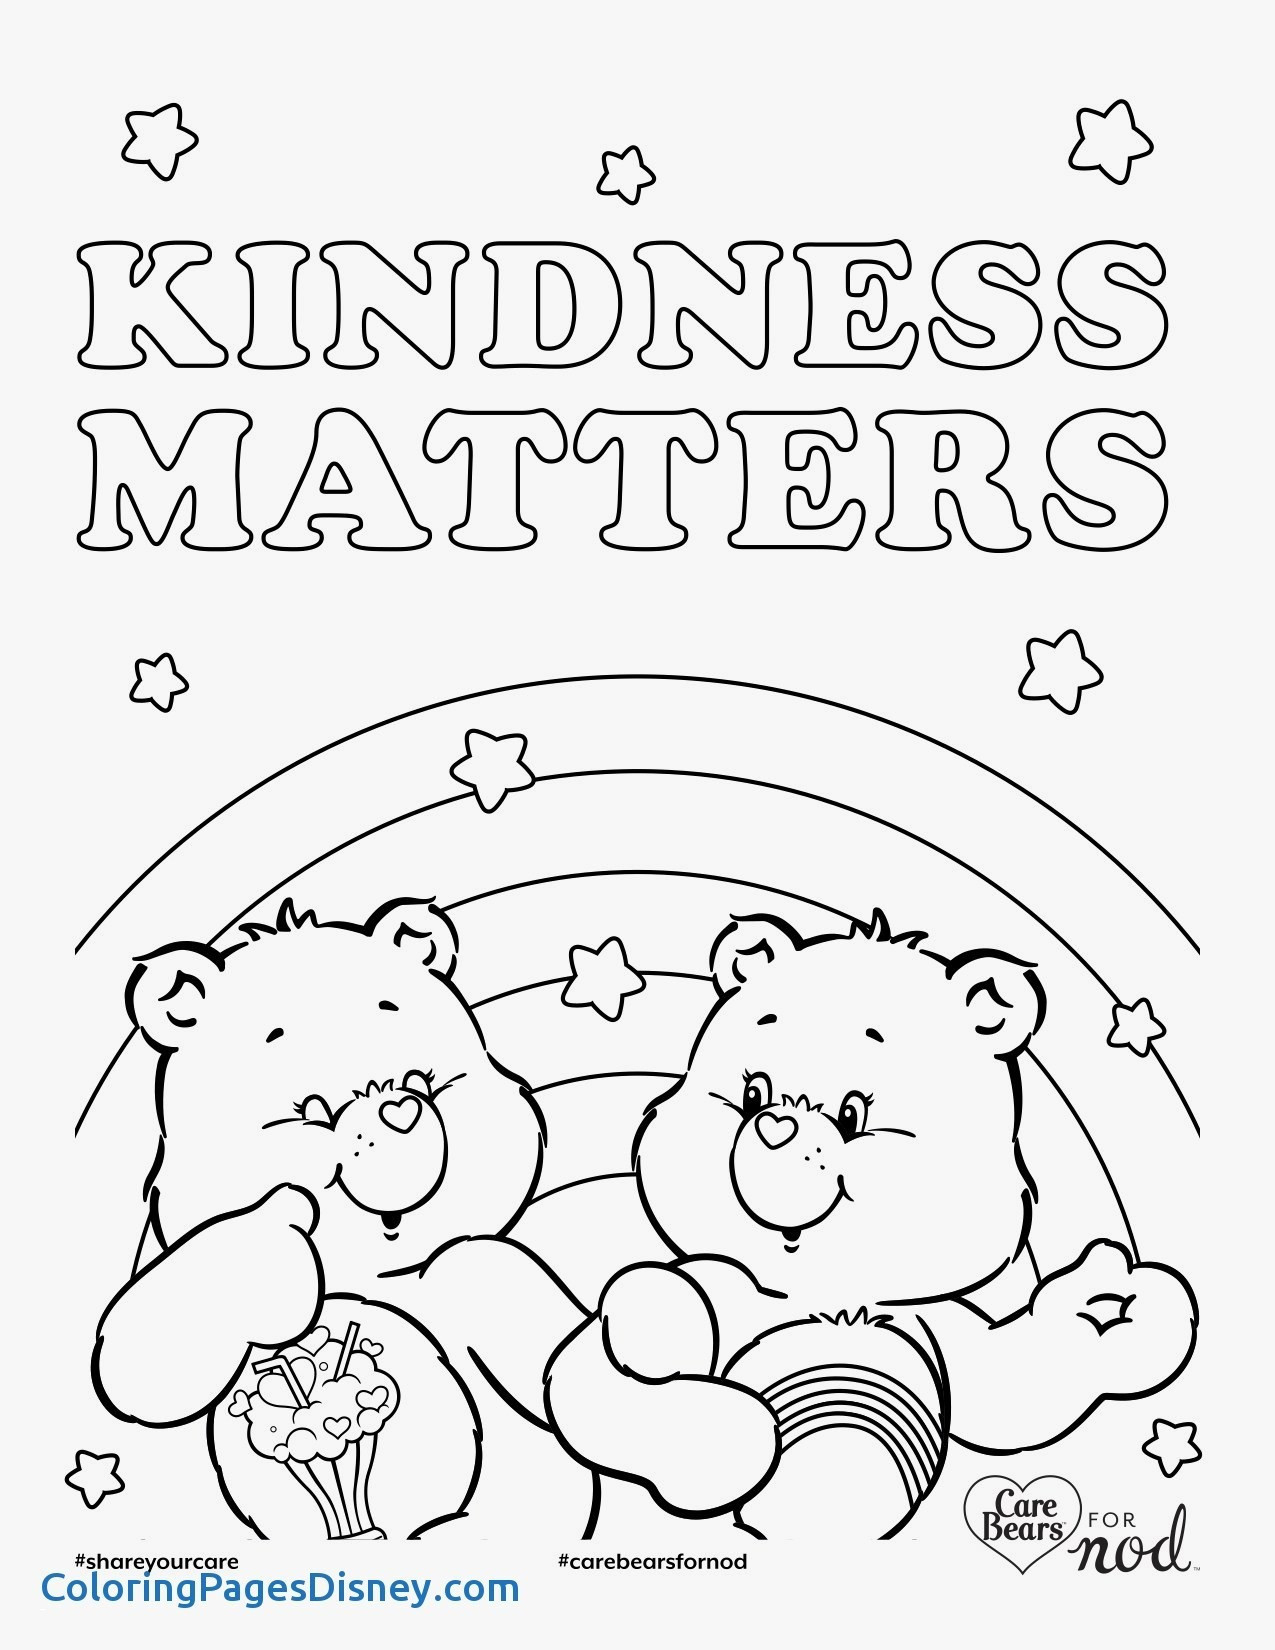 showing kindness coloring pages Download-Free Bunny Rabbit Coloring Pages Kindness Coloring Pages Printable Free Adult Lovely Awesome Od Dog 9-d